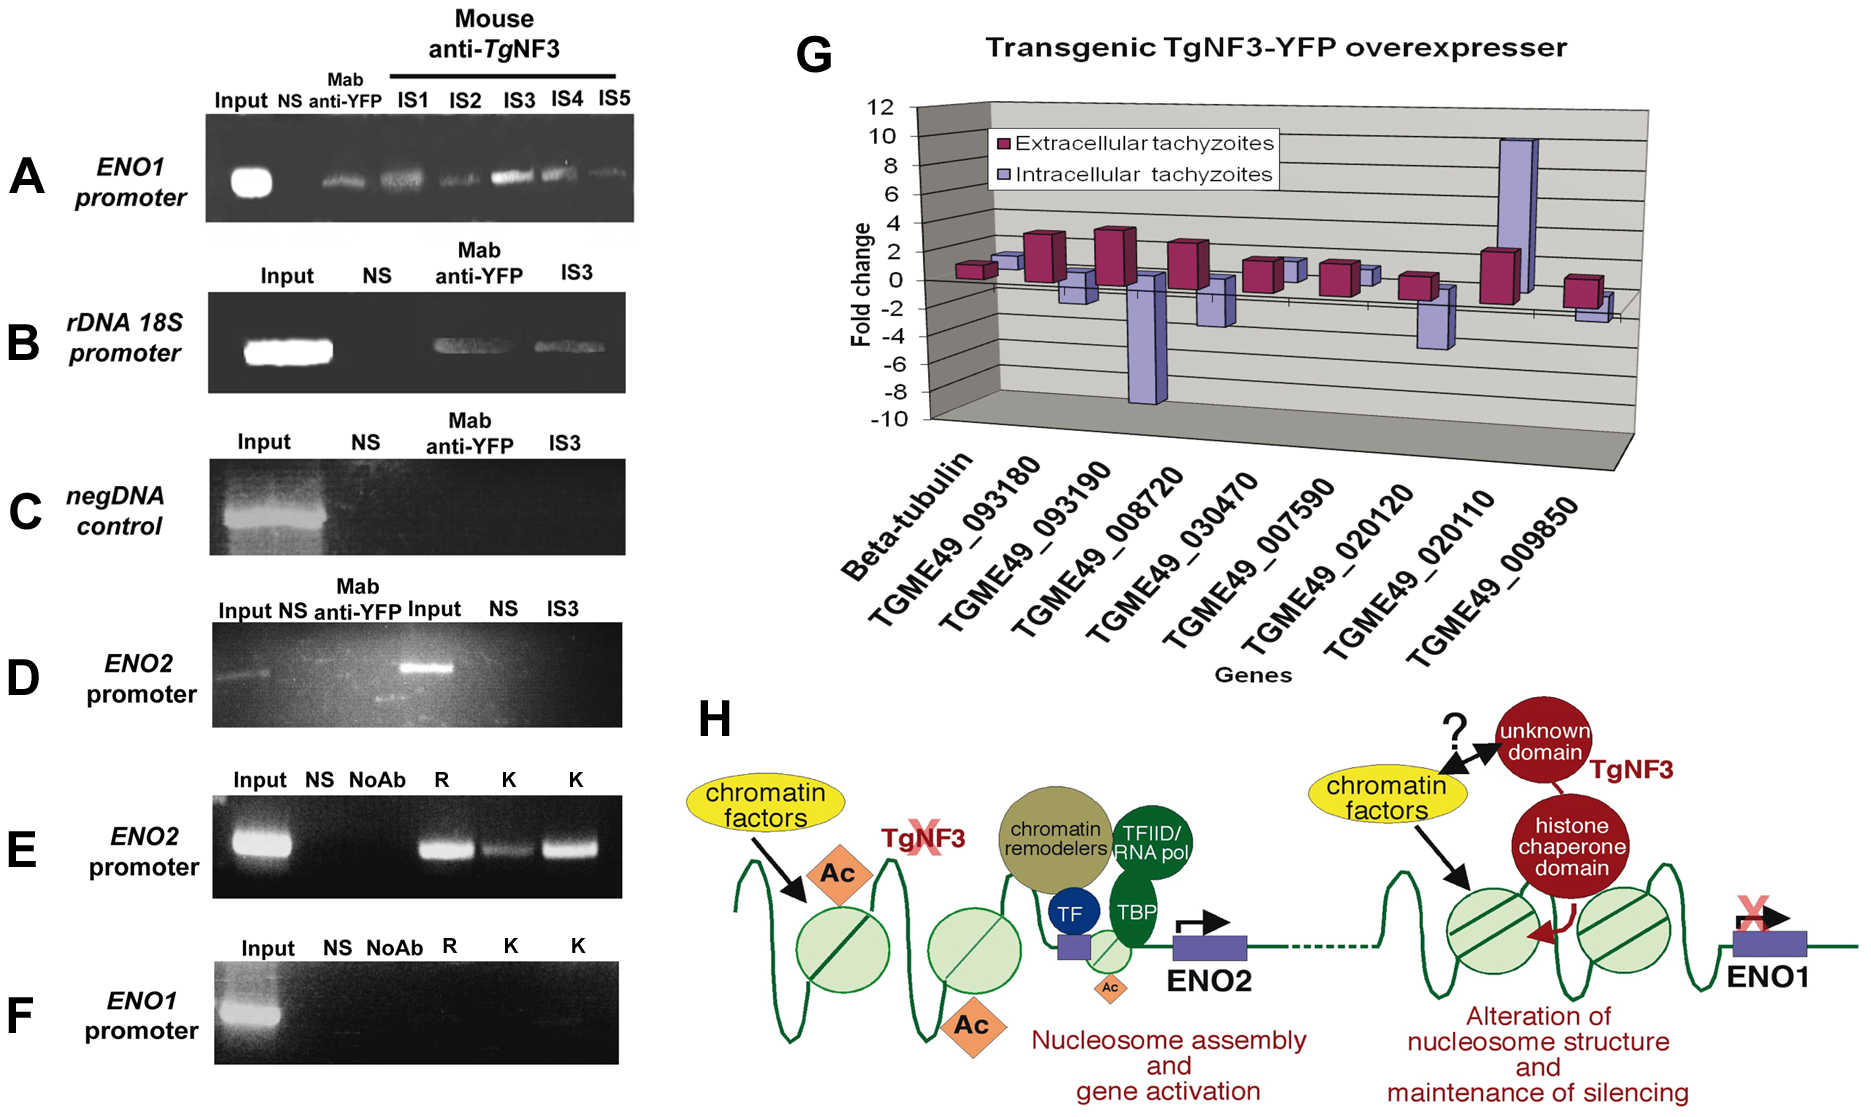 Chromatin immunoprecipitation (ChIP) analyses of TgNF3 binding sites <i>in vivo</i>.